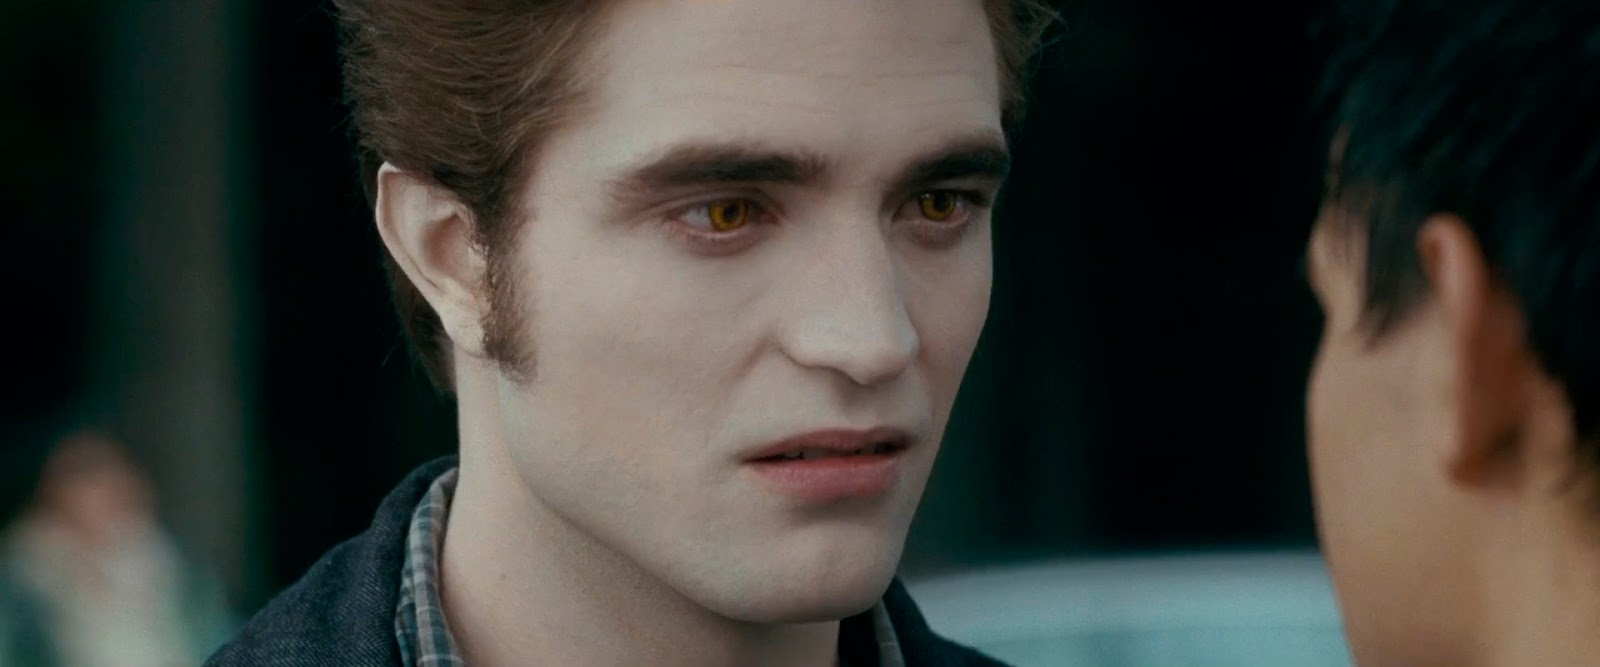 Twilight Saga Crepúsculo HD 1080p Latino cap 2